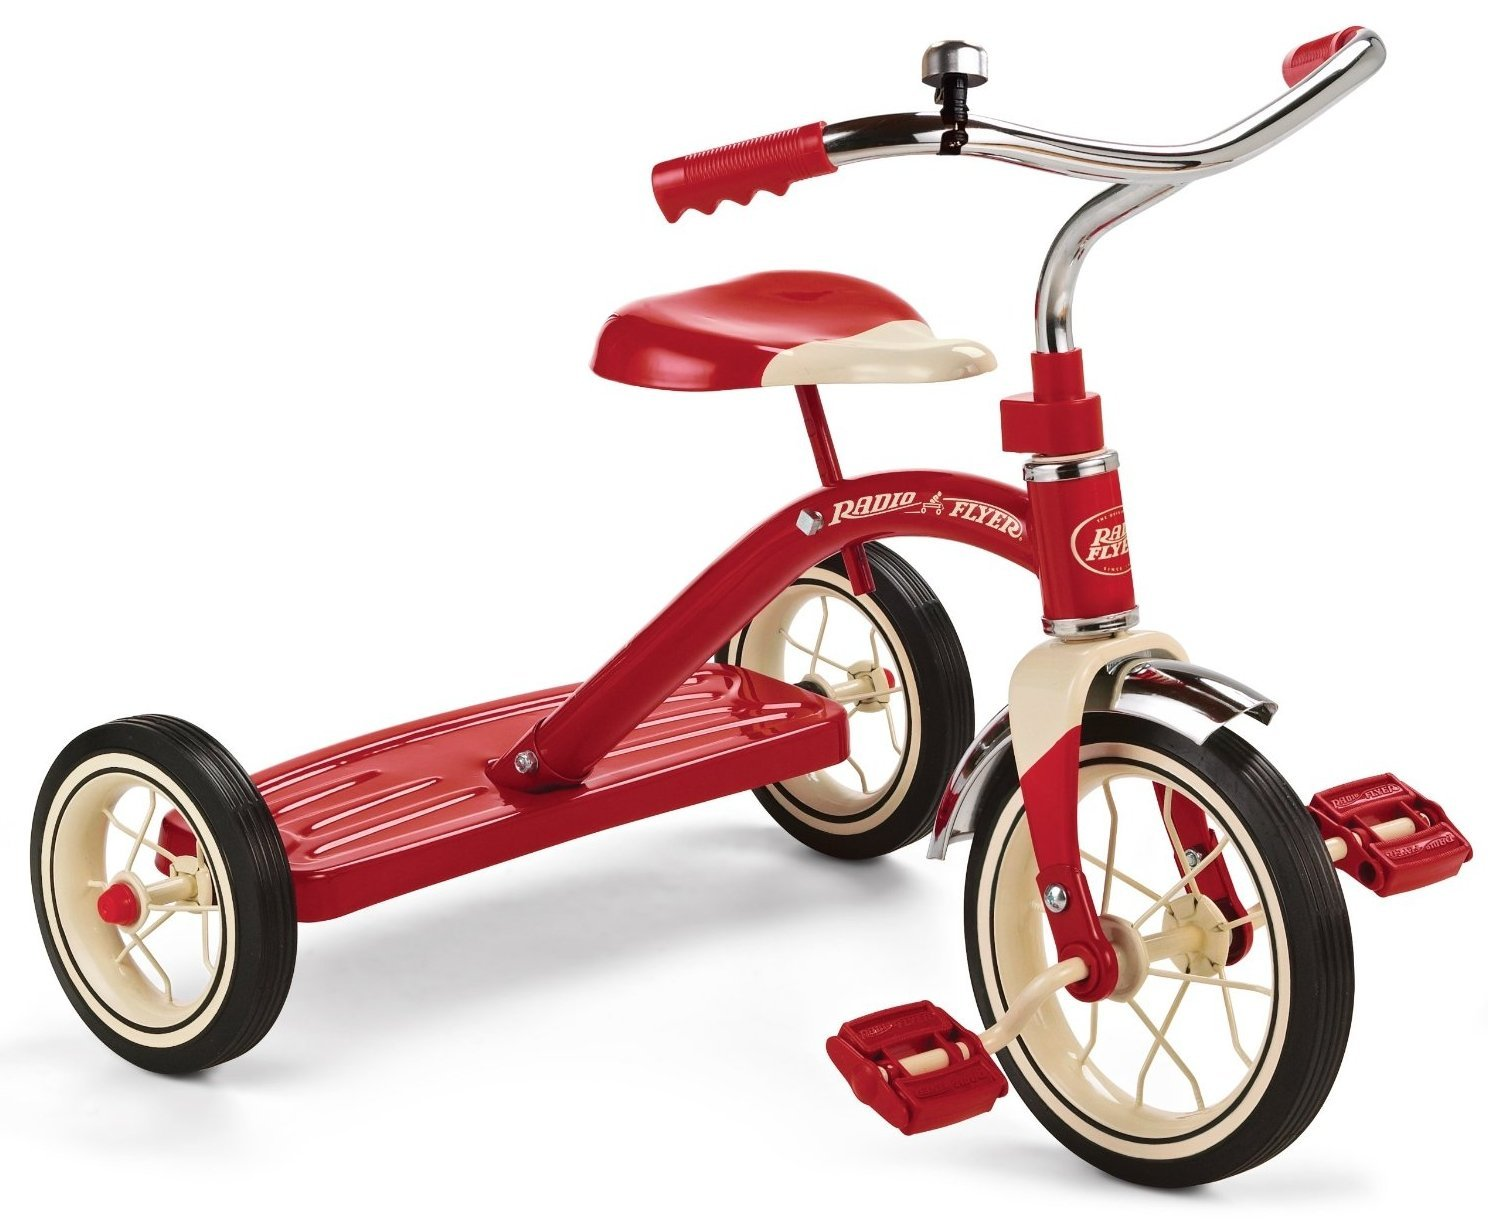 Radio Flyer Classic Red Tricycle, 10-Inch- Children's Tricyle- Sturdy Trike- Steel Construction- Durable Spoked Wheels